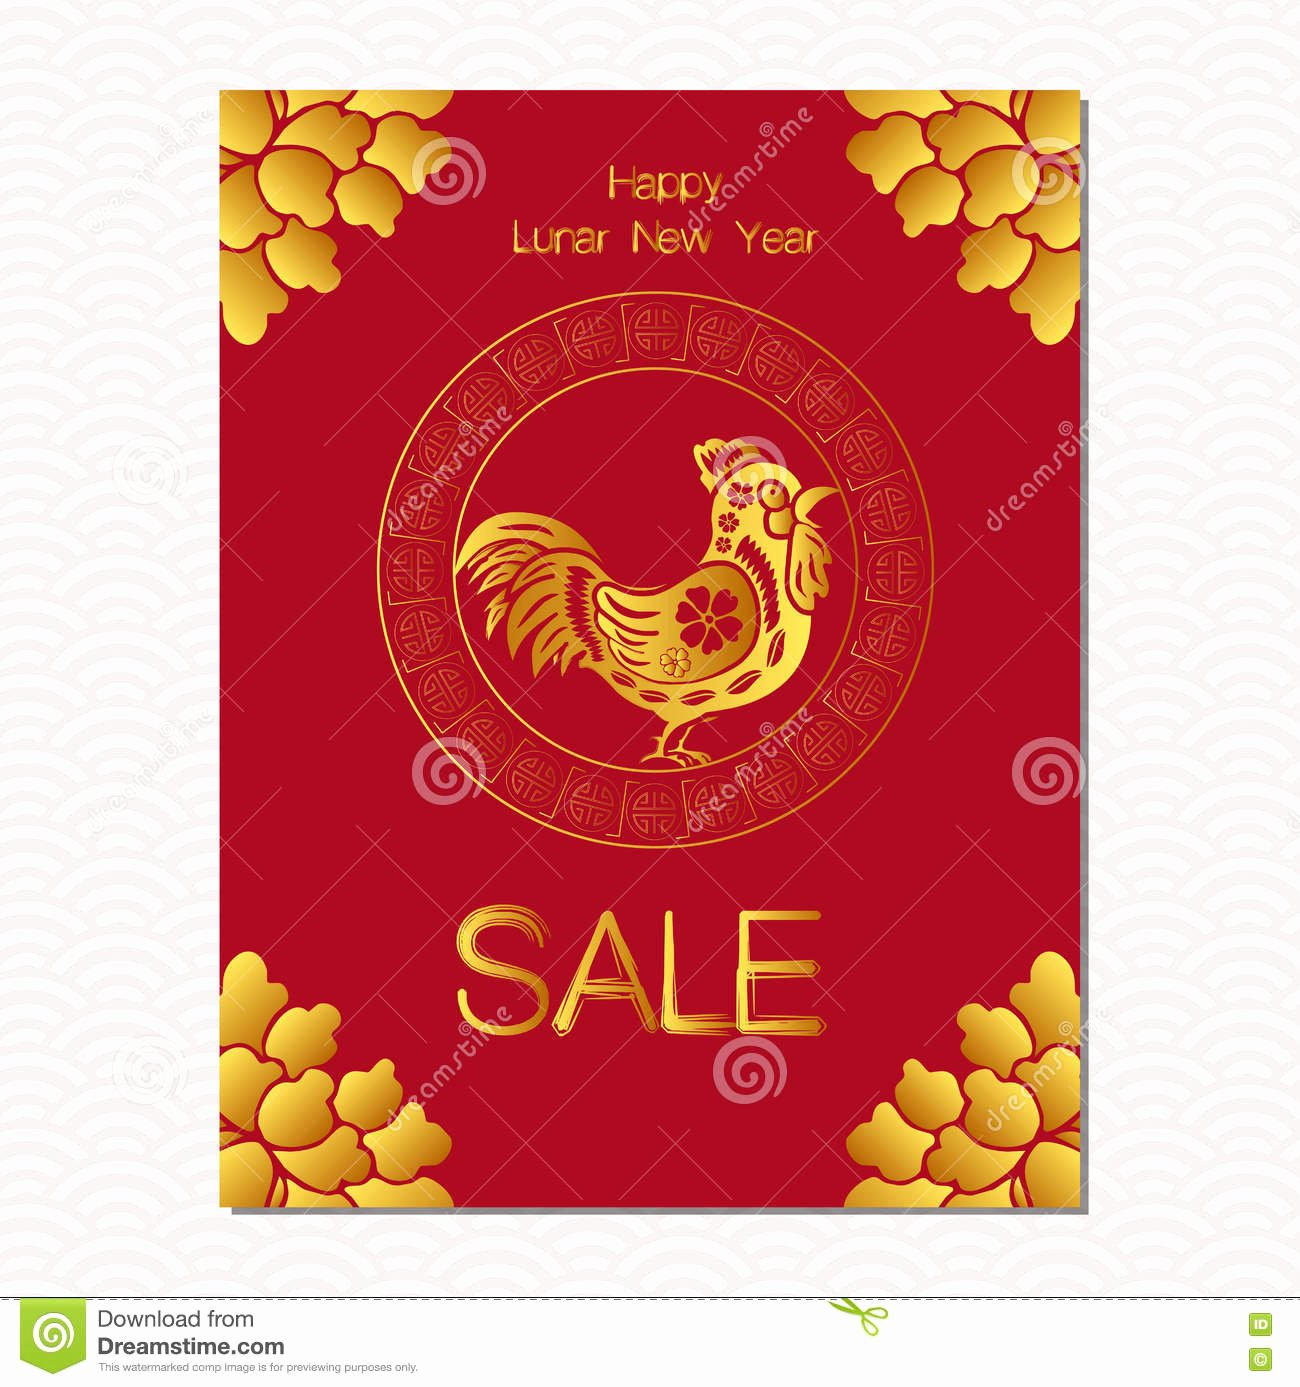 Chinese New Year Sale Design Template the Year Rooster